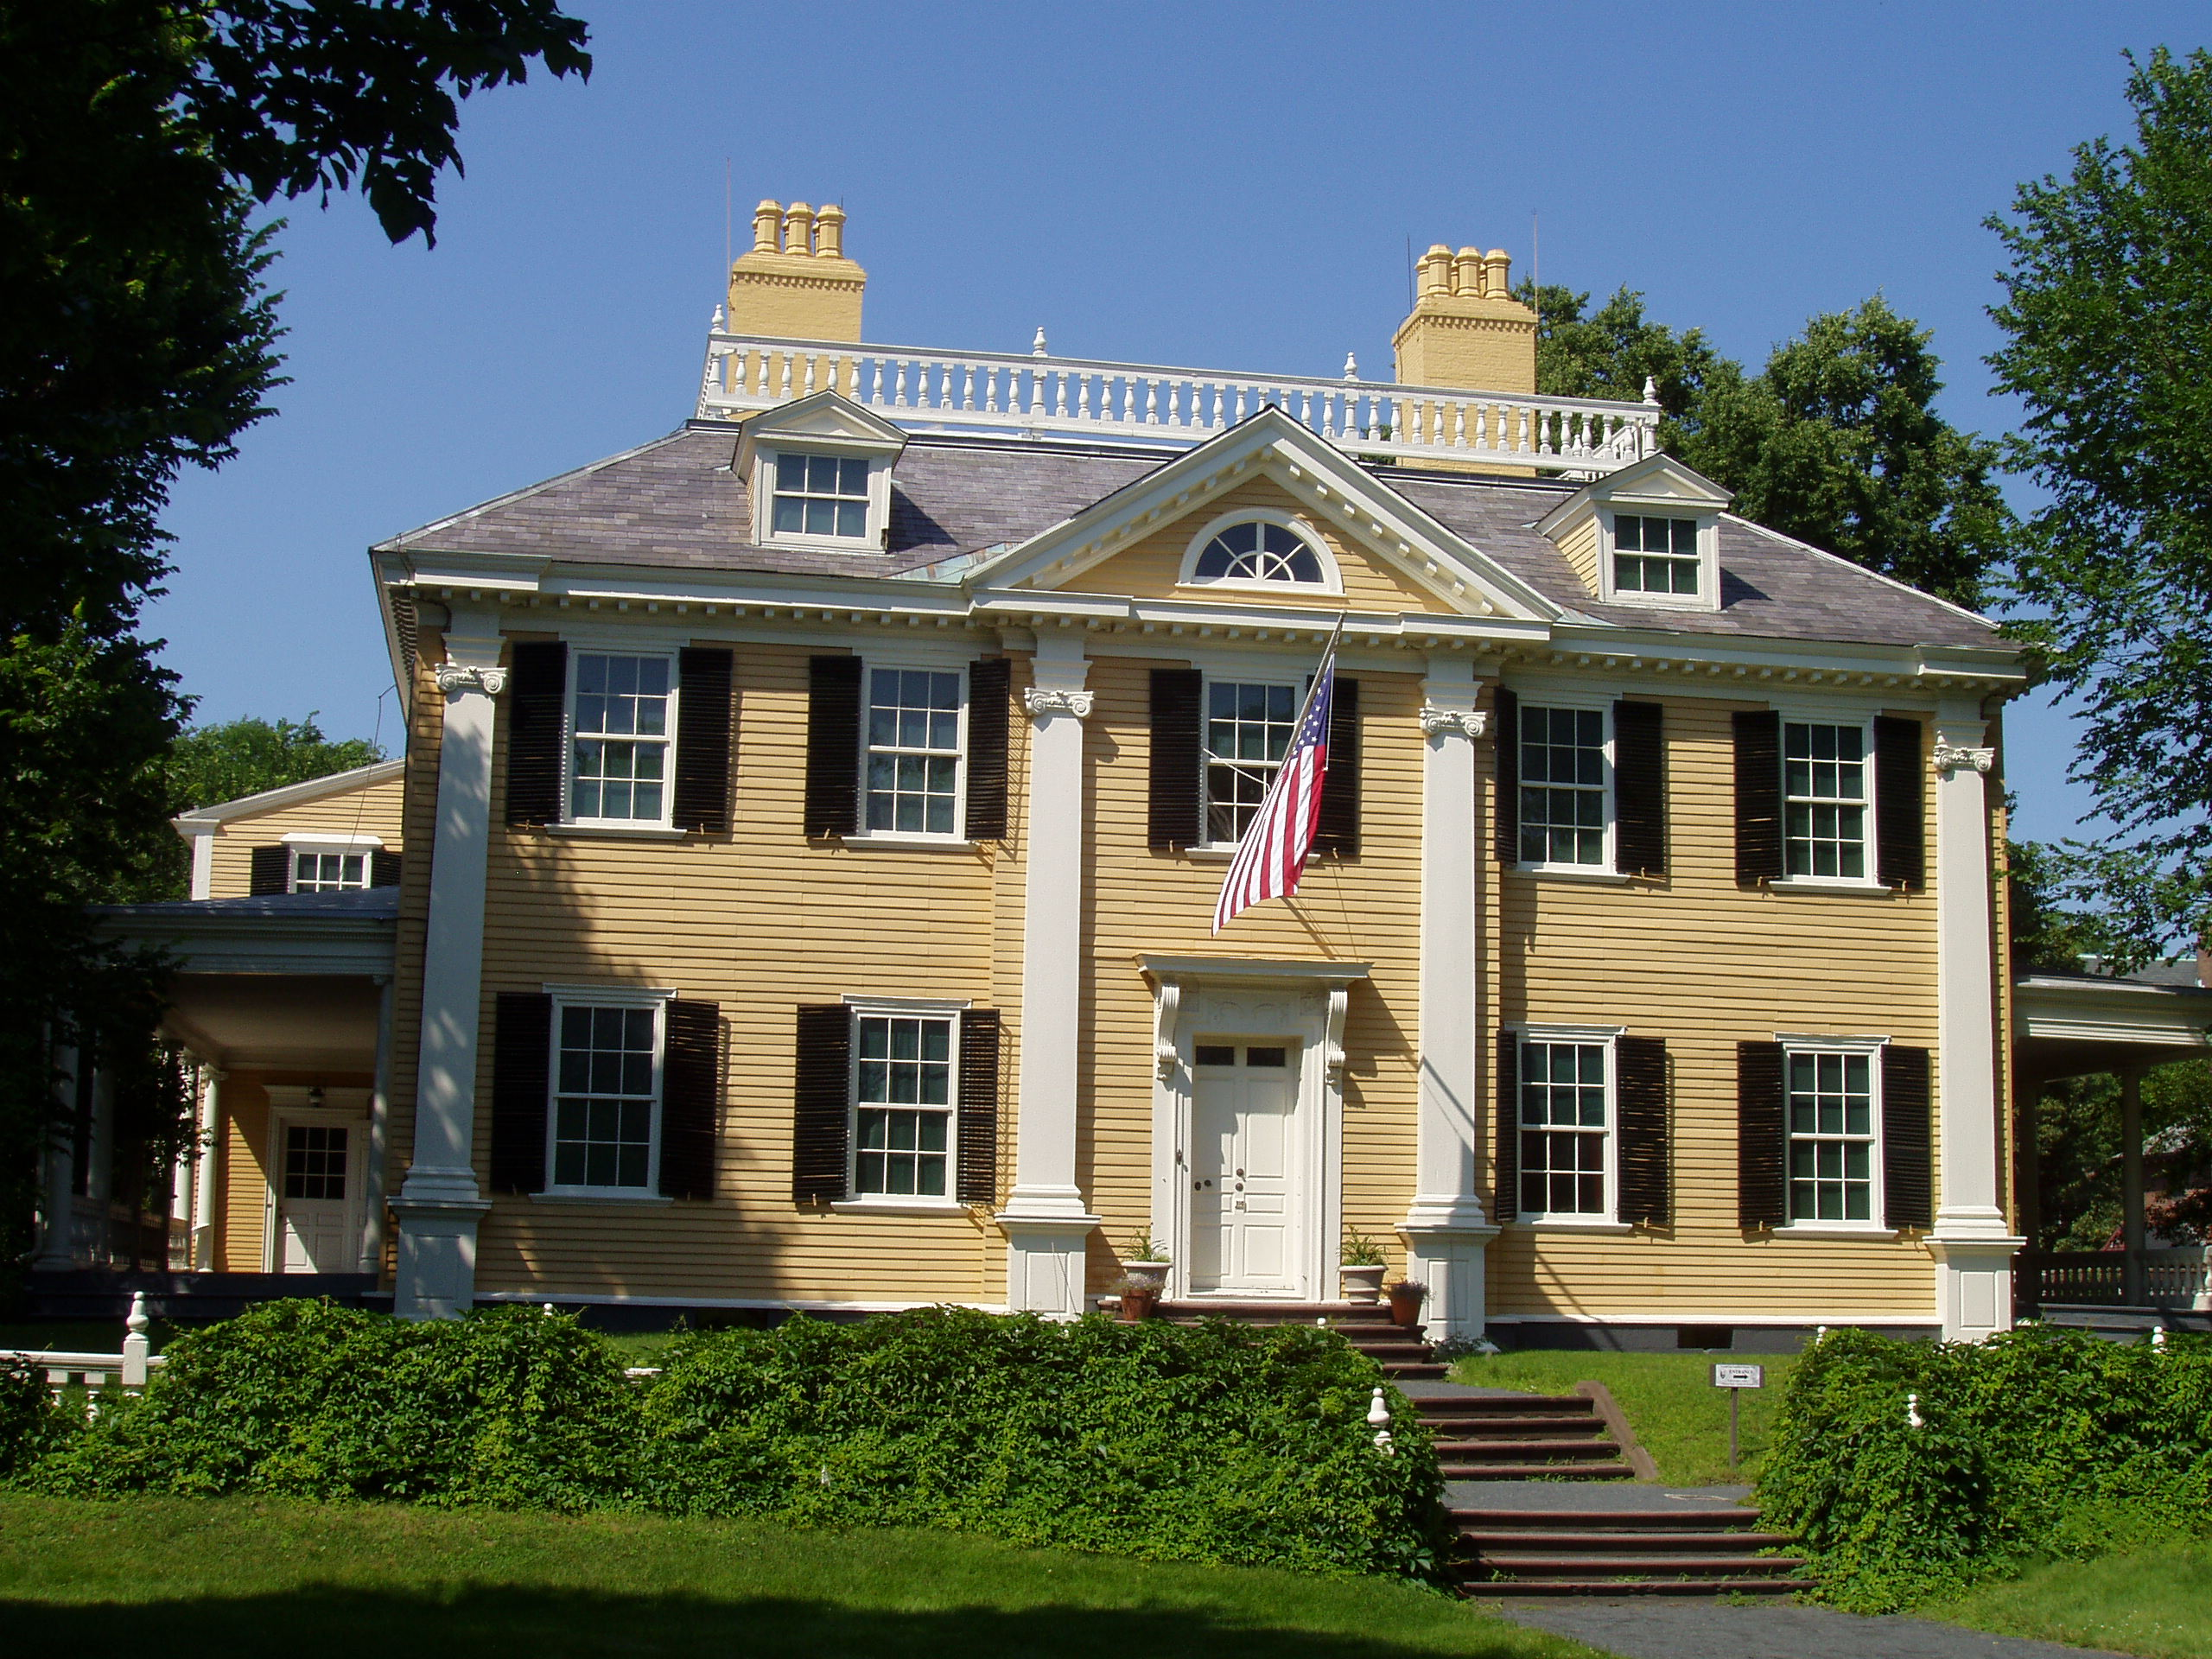 The Brick House Bed And Breakfast In Hawthorne Pa